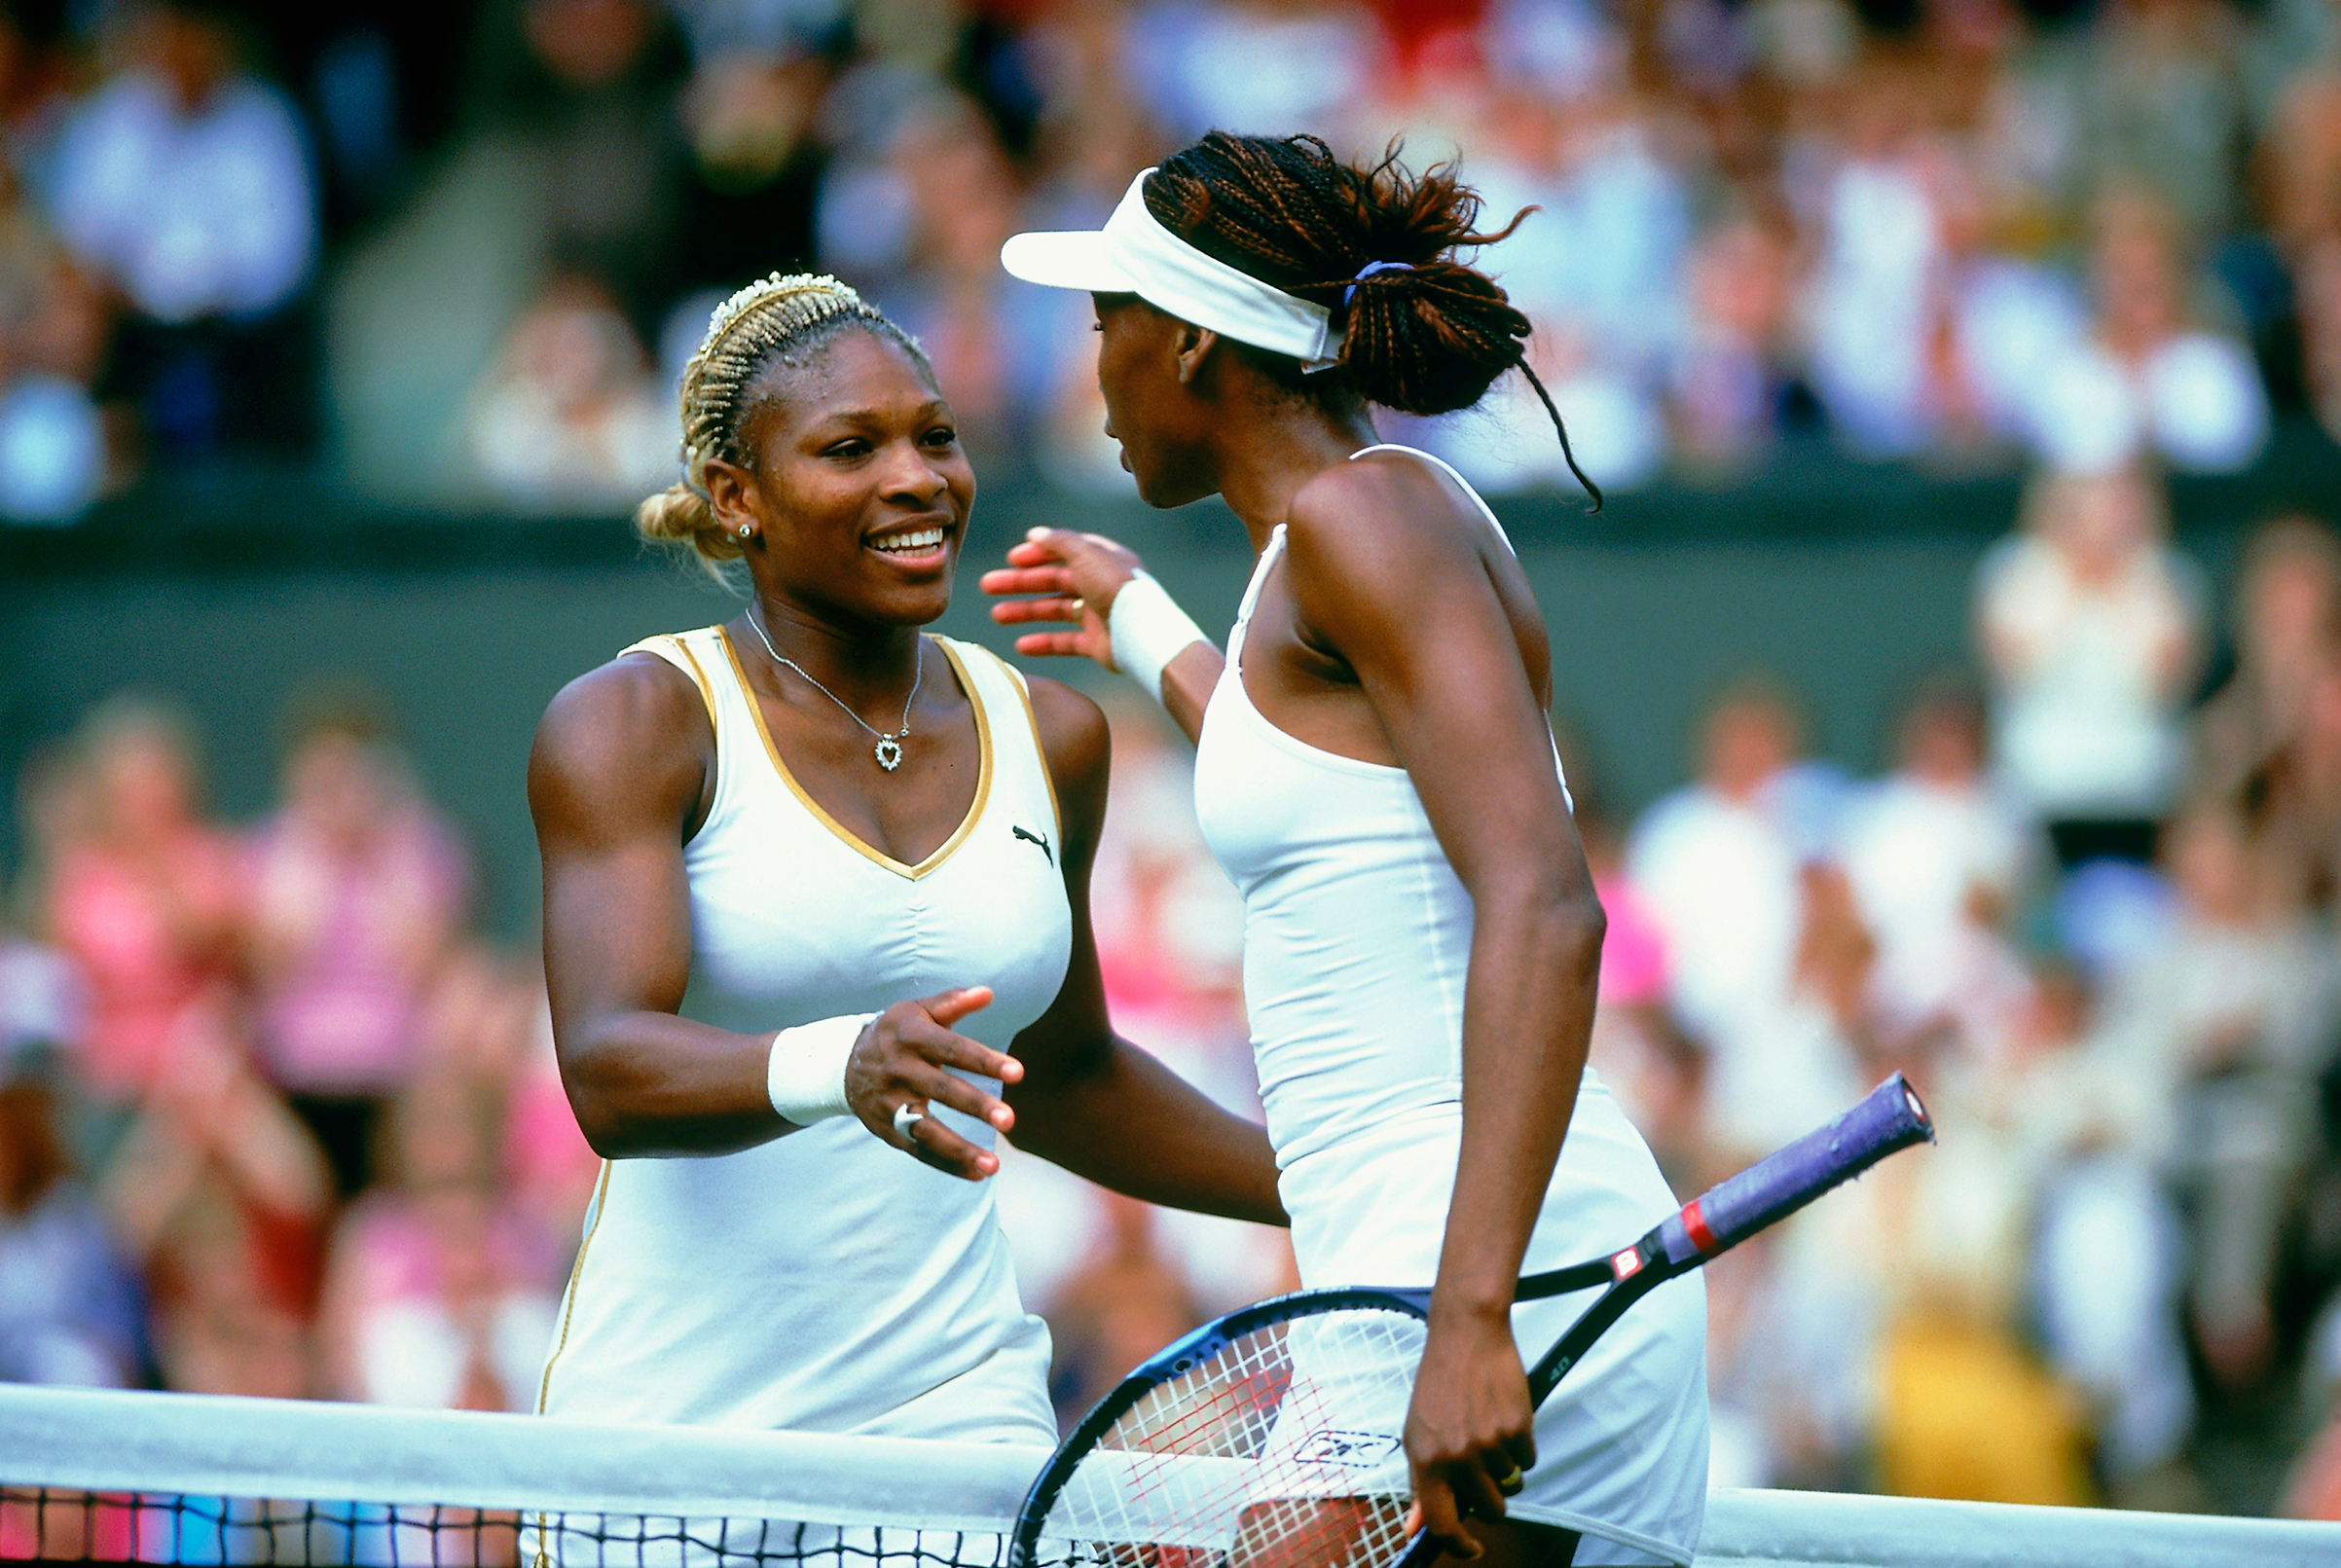 Serena Williams of the USA is congratulated by her sister Venus Williams after winning the Ladies Final at the Wimbledon Lawn Tennis Championship held at the All England Lawn Tennis and Croquet Club in Wimbledon, London on July 6, 2002.